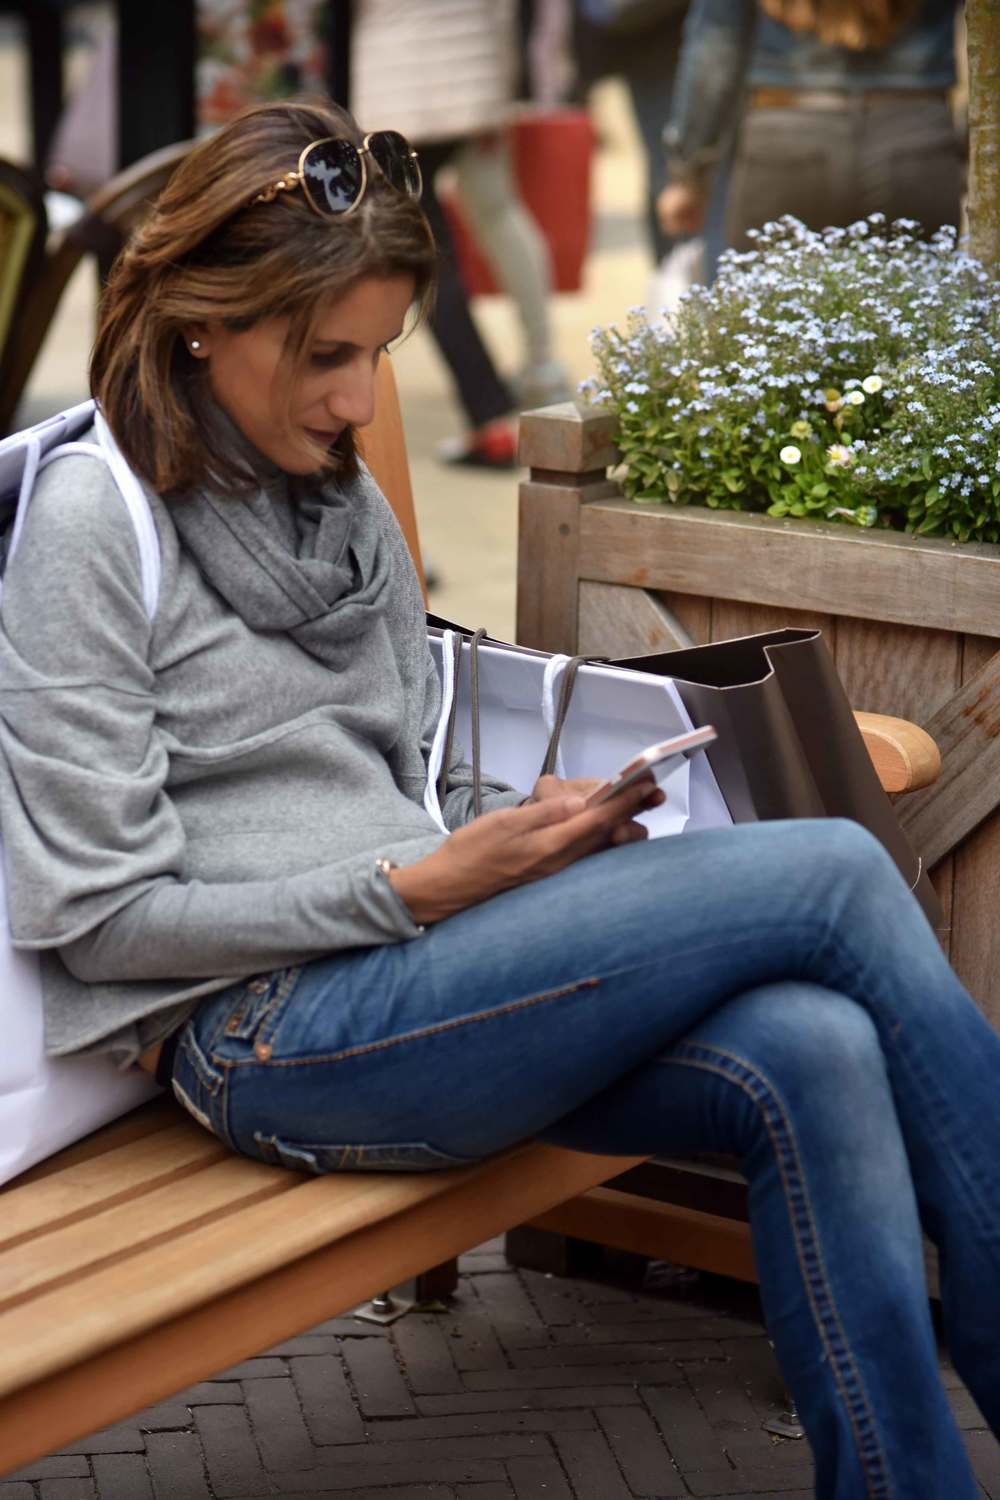 Jjill cashmere kimono sweater, Jill cashmere infinity scarf, Designer Outlet Roermond, Netherlands. Photo: Nicola Nolting, image©sourcingstyle.com